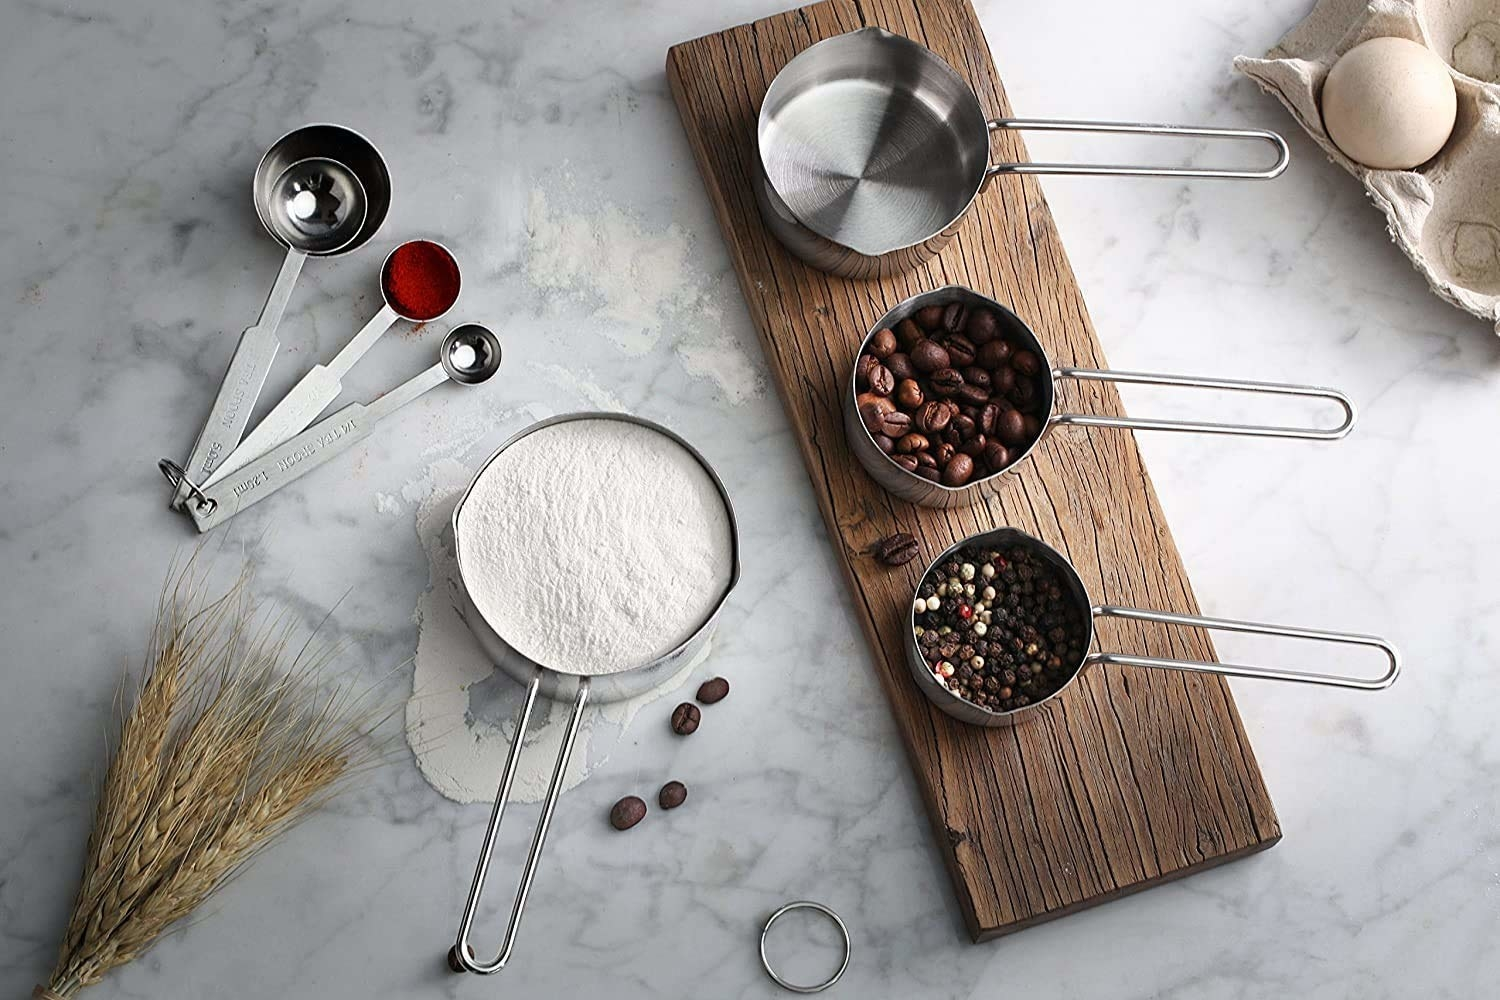 4 measuring cup and 4 measuring spoons filled with different ingredients like flour, coffee beans and spices